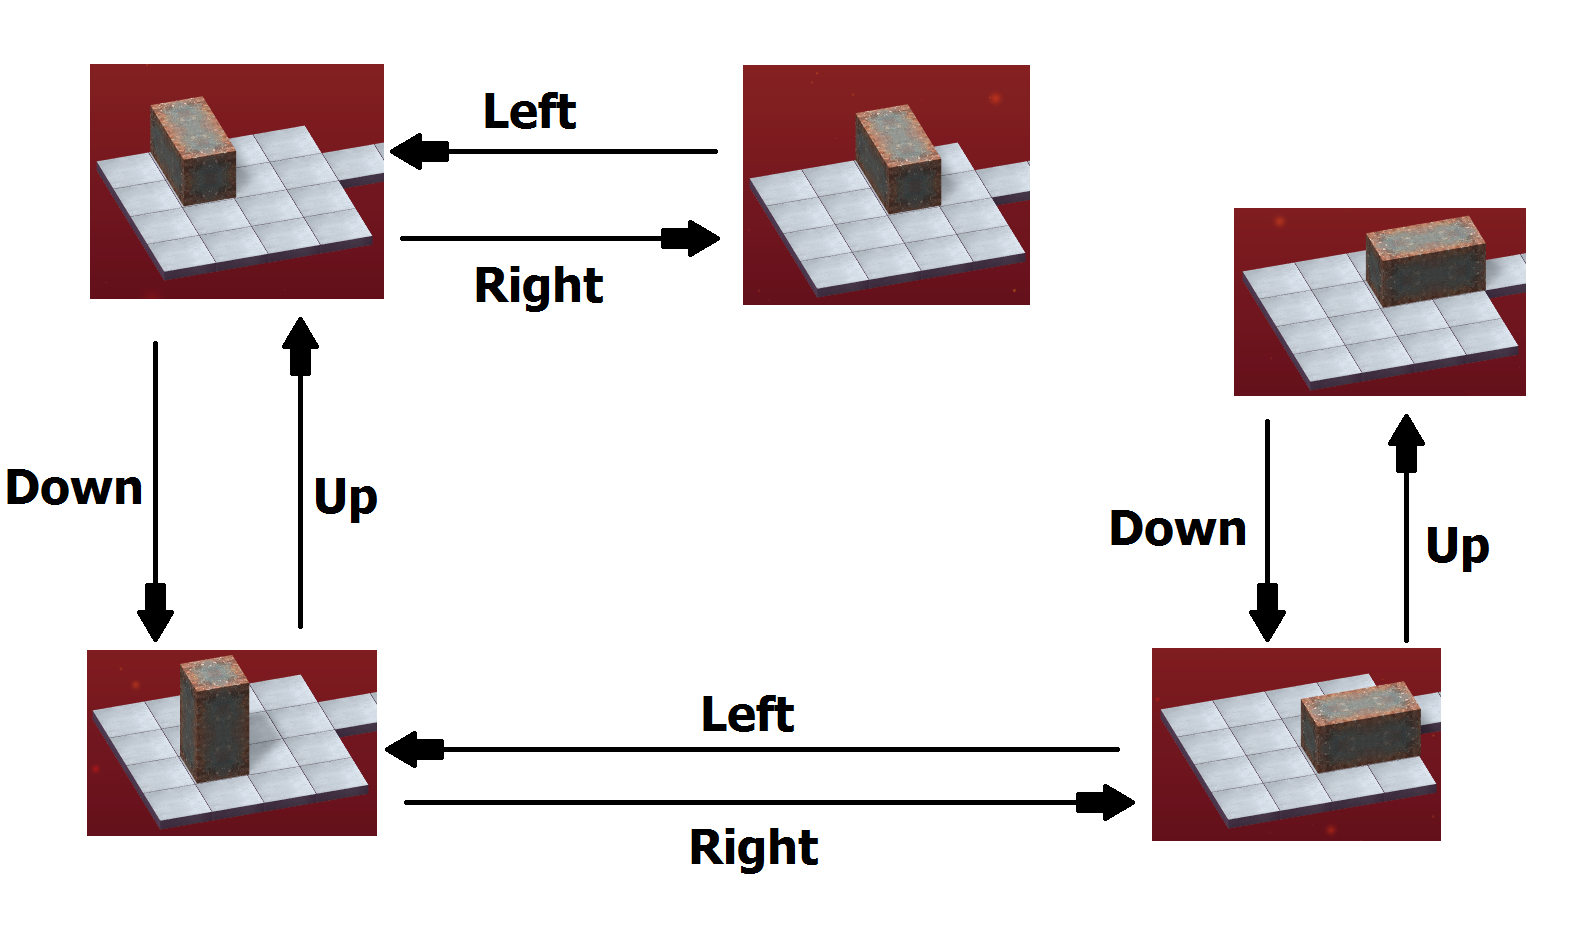 Movement in Bloxorz.